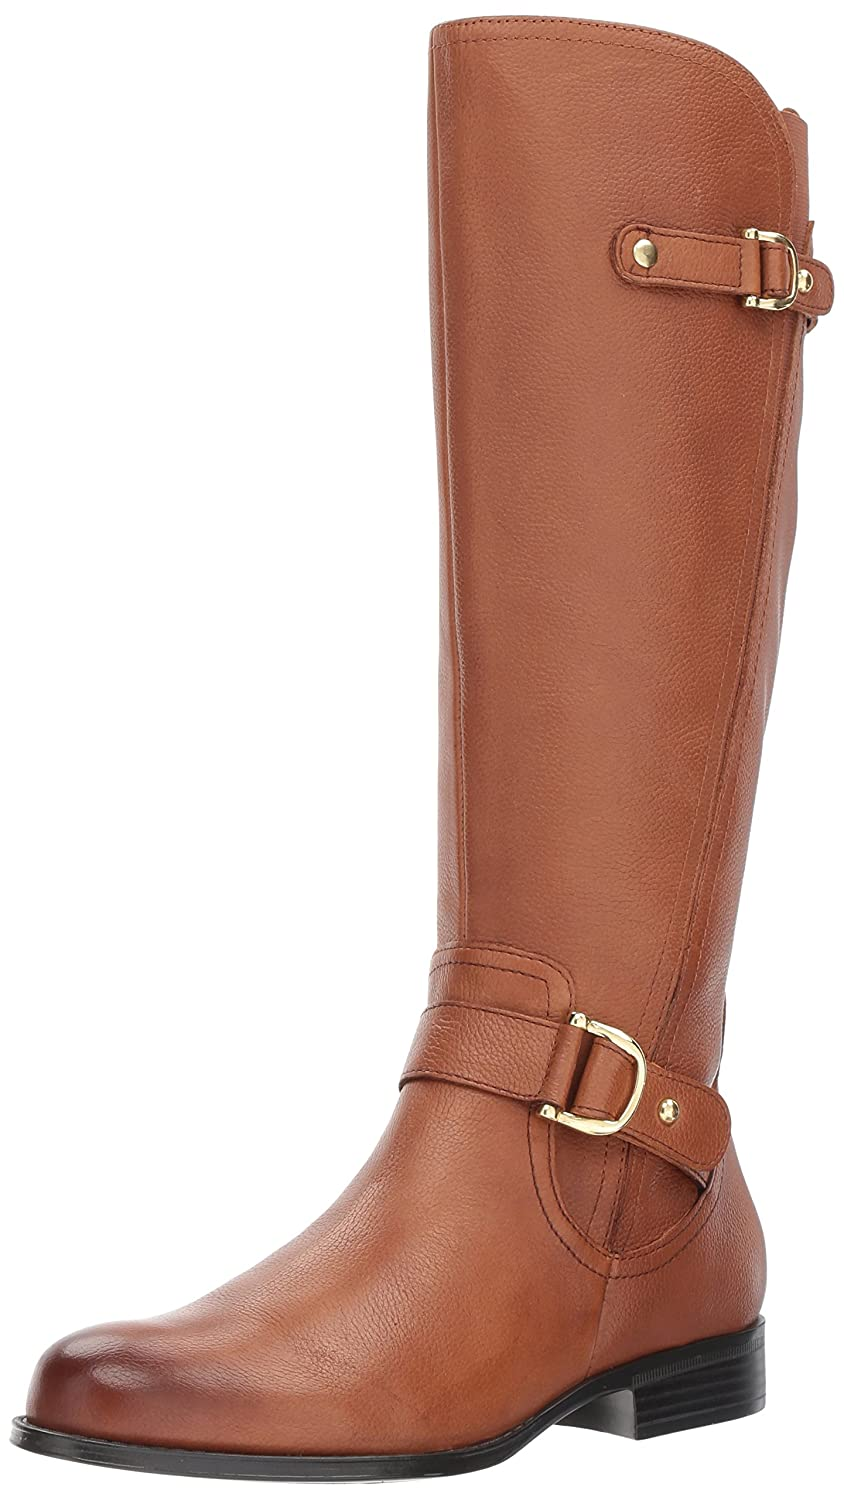 Naturalizer Women's Jenelle Riding Boot B06XBMLF9H 12 B(M) US|Tan